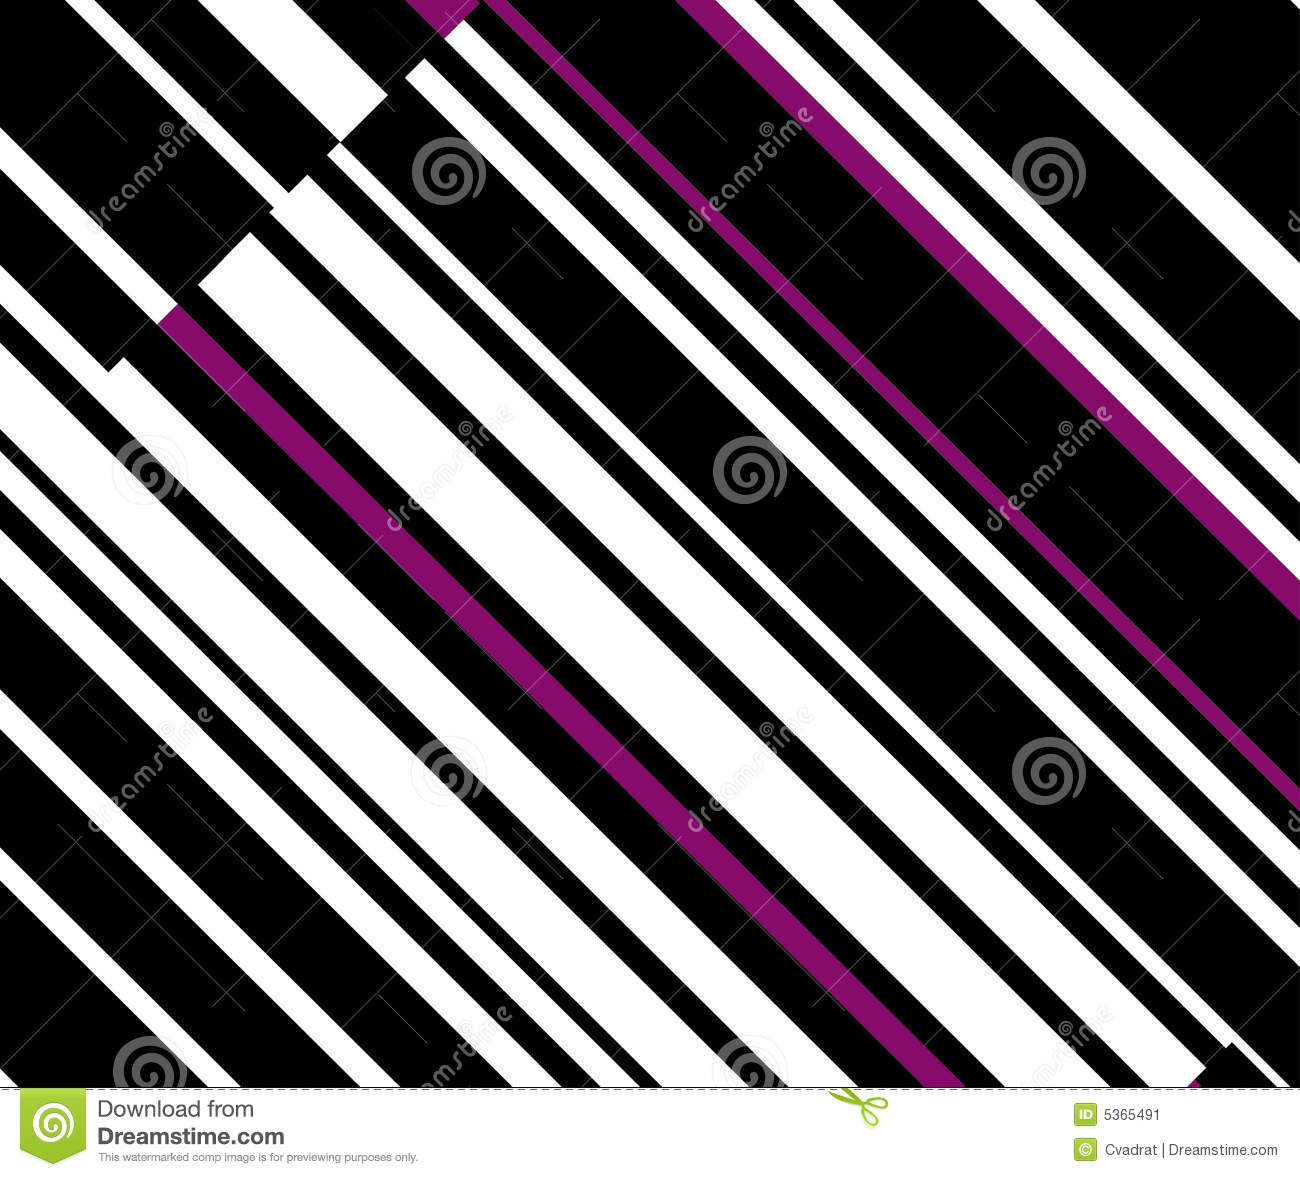 Diagonal Line In Art : Op art homage to gf diagonal lines two stock illustration